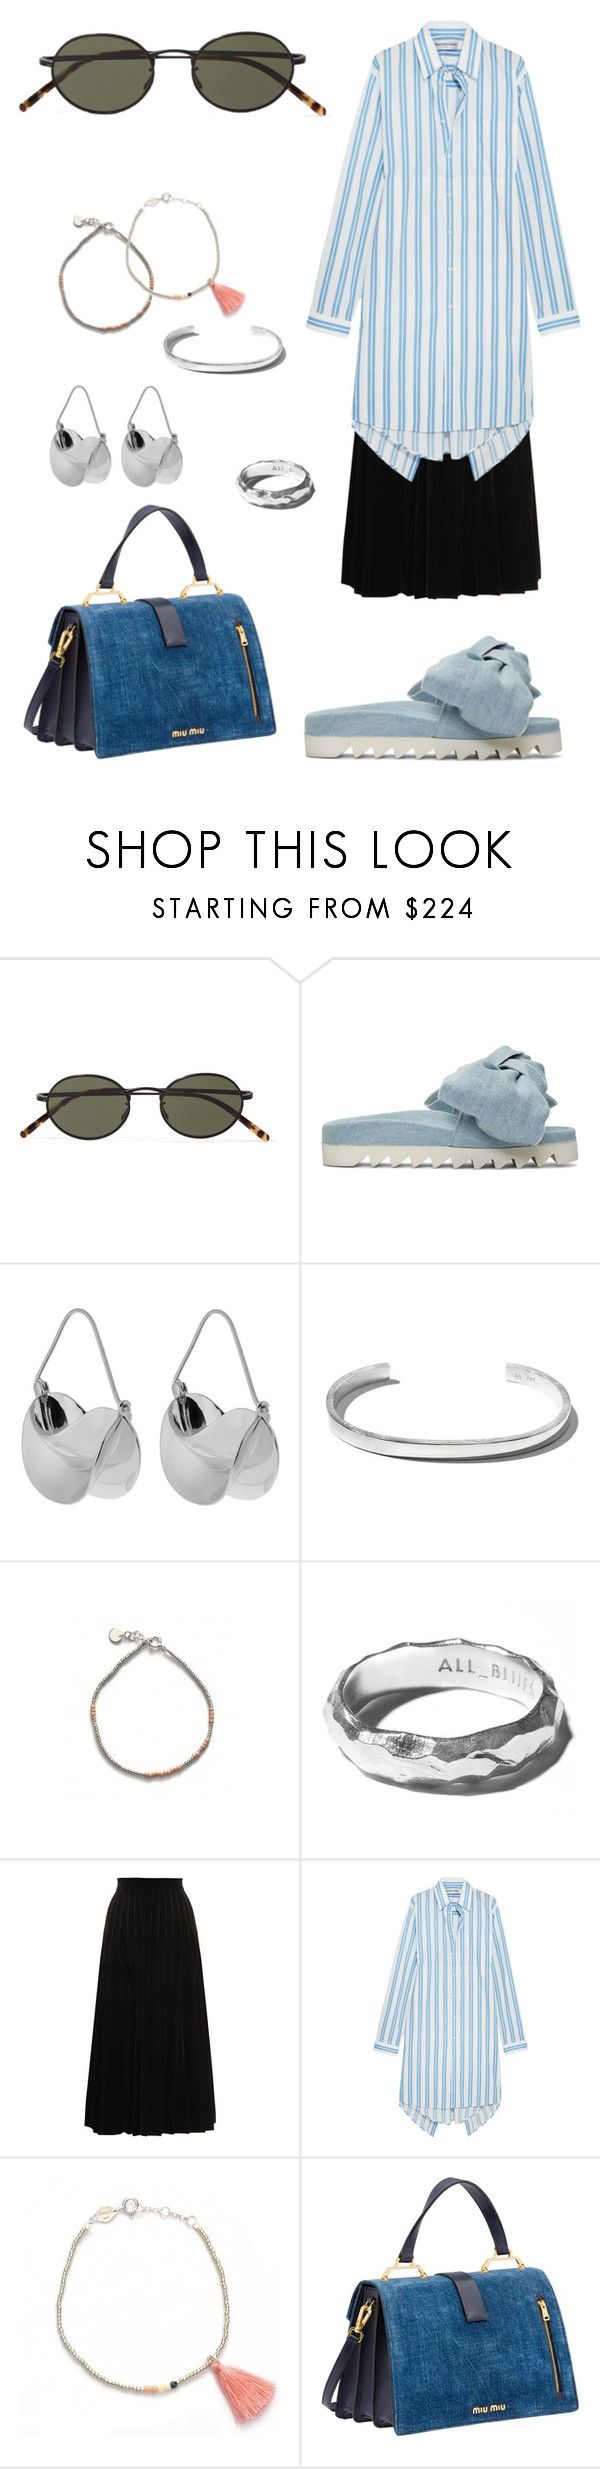 """""""Slide sandal"""" by ulrikkelysbeck ❤ liked on Polyvore featuring Oliver Peoples, Joshua's, Anissa Kermiche, Yves Saint Laurent, Balenciaga and Miu Miu"""